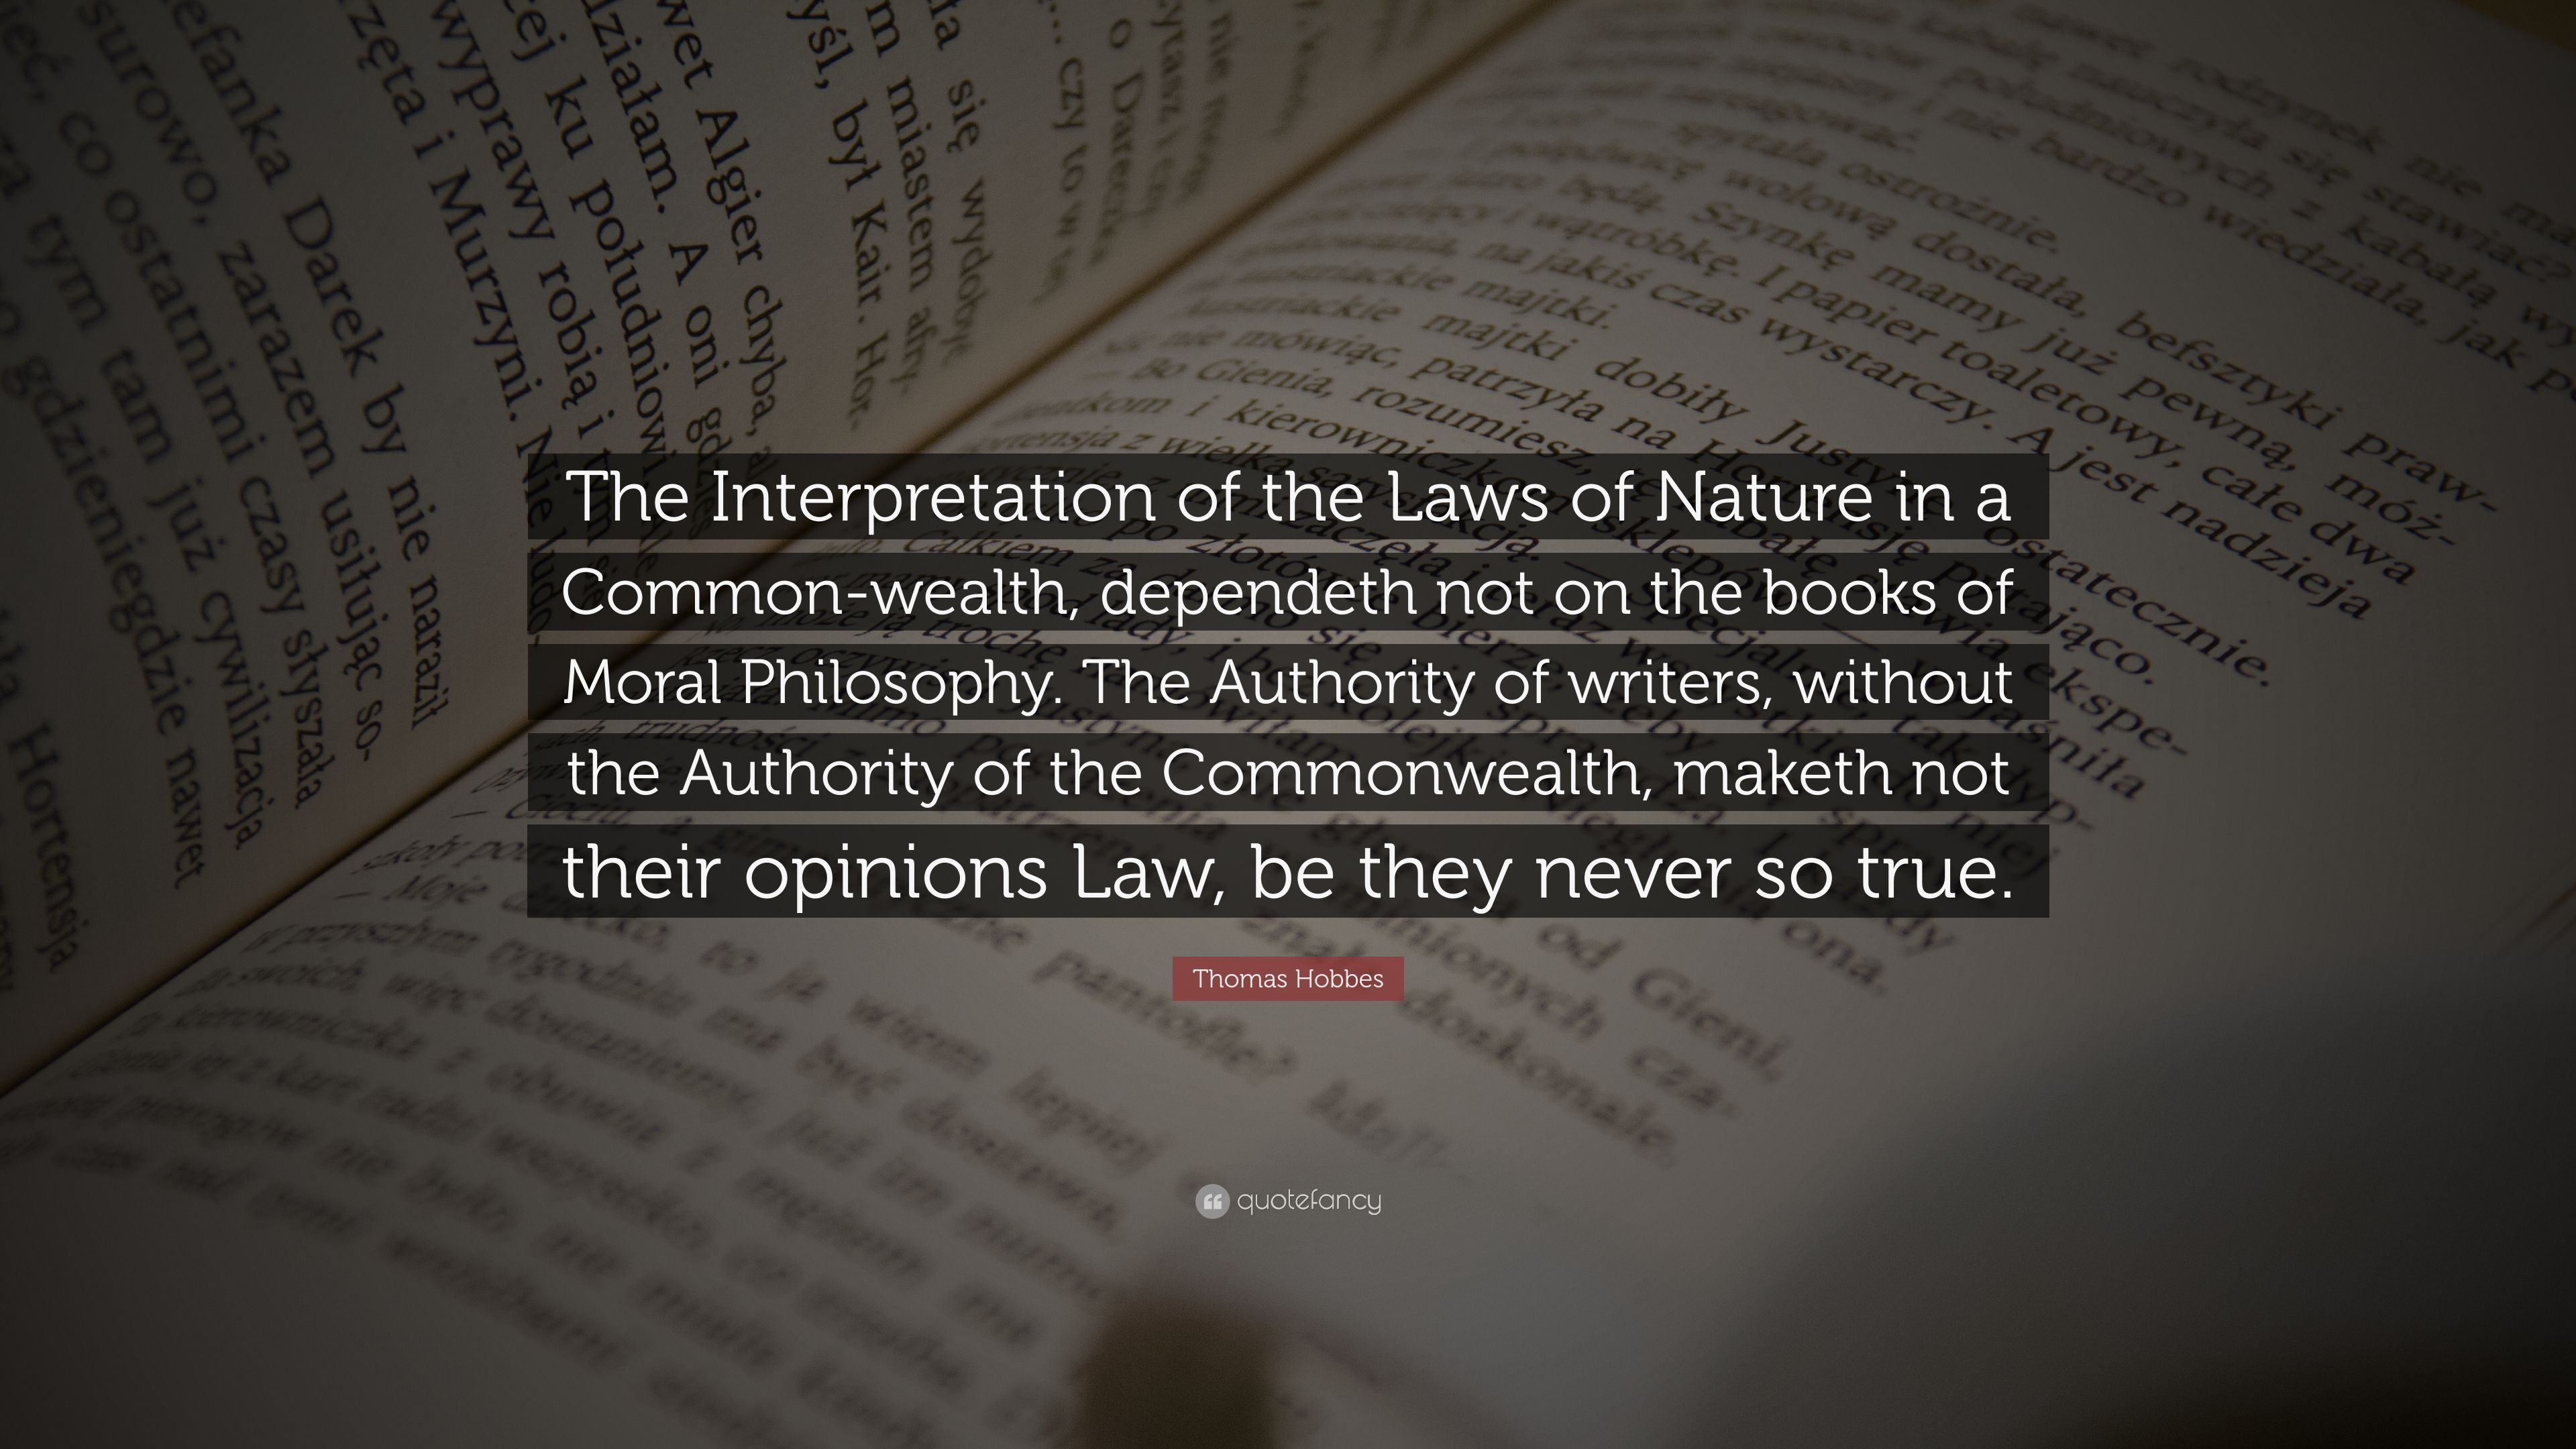 Thomas Hobbes Social Contract Quotes Hobbes Law Of Nature  Popular Nature 2017